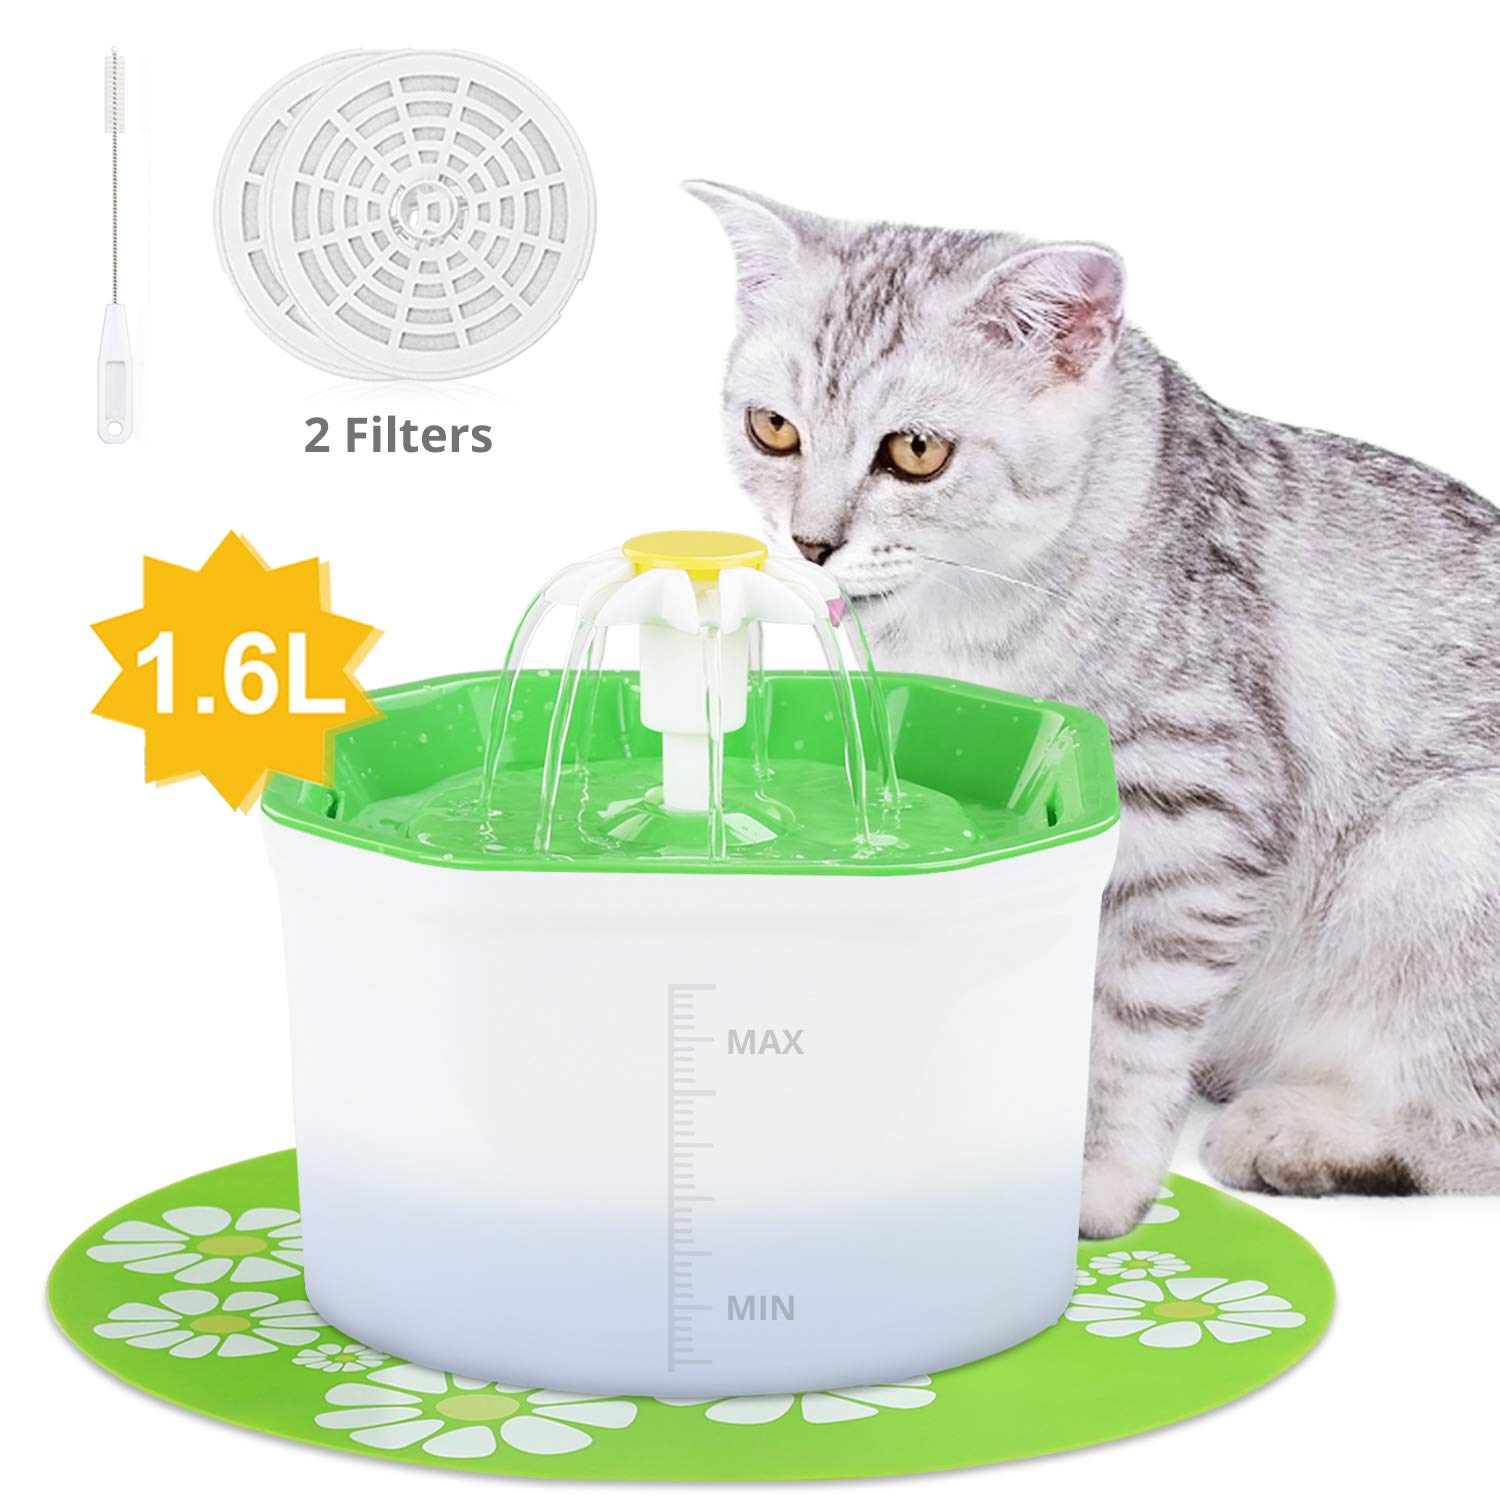 VITCOCO Pet Fountain,60oz/1.6L Flower Style Designed Dog and Cat Water Fountain Healthy Hygienic Fresh Water Automatic Electric Water Dispenser for Cats,Birds,Small Dogs and Animals by VITCOCO